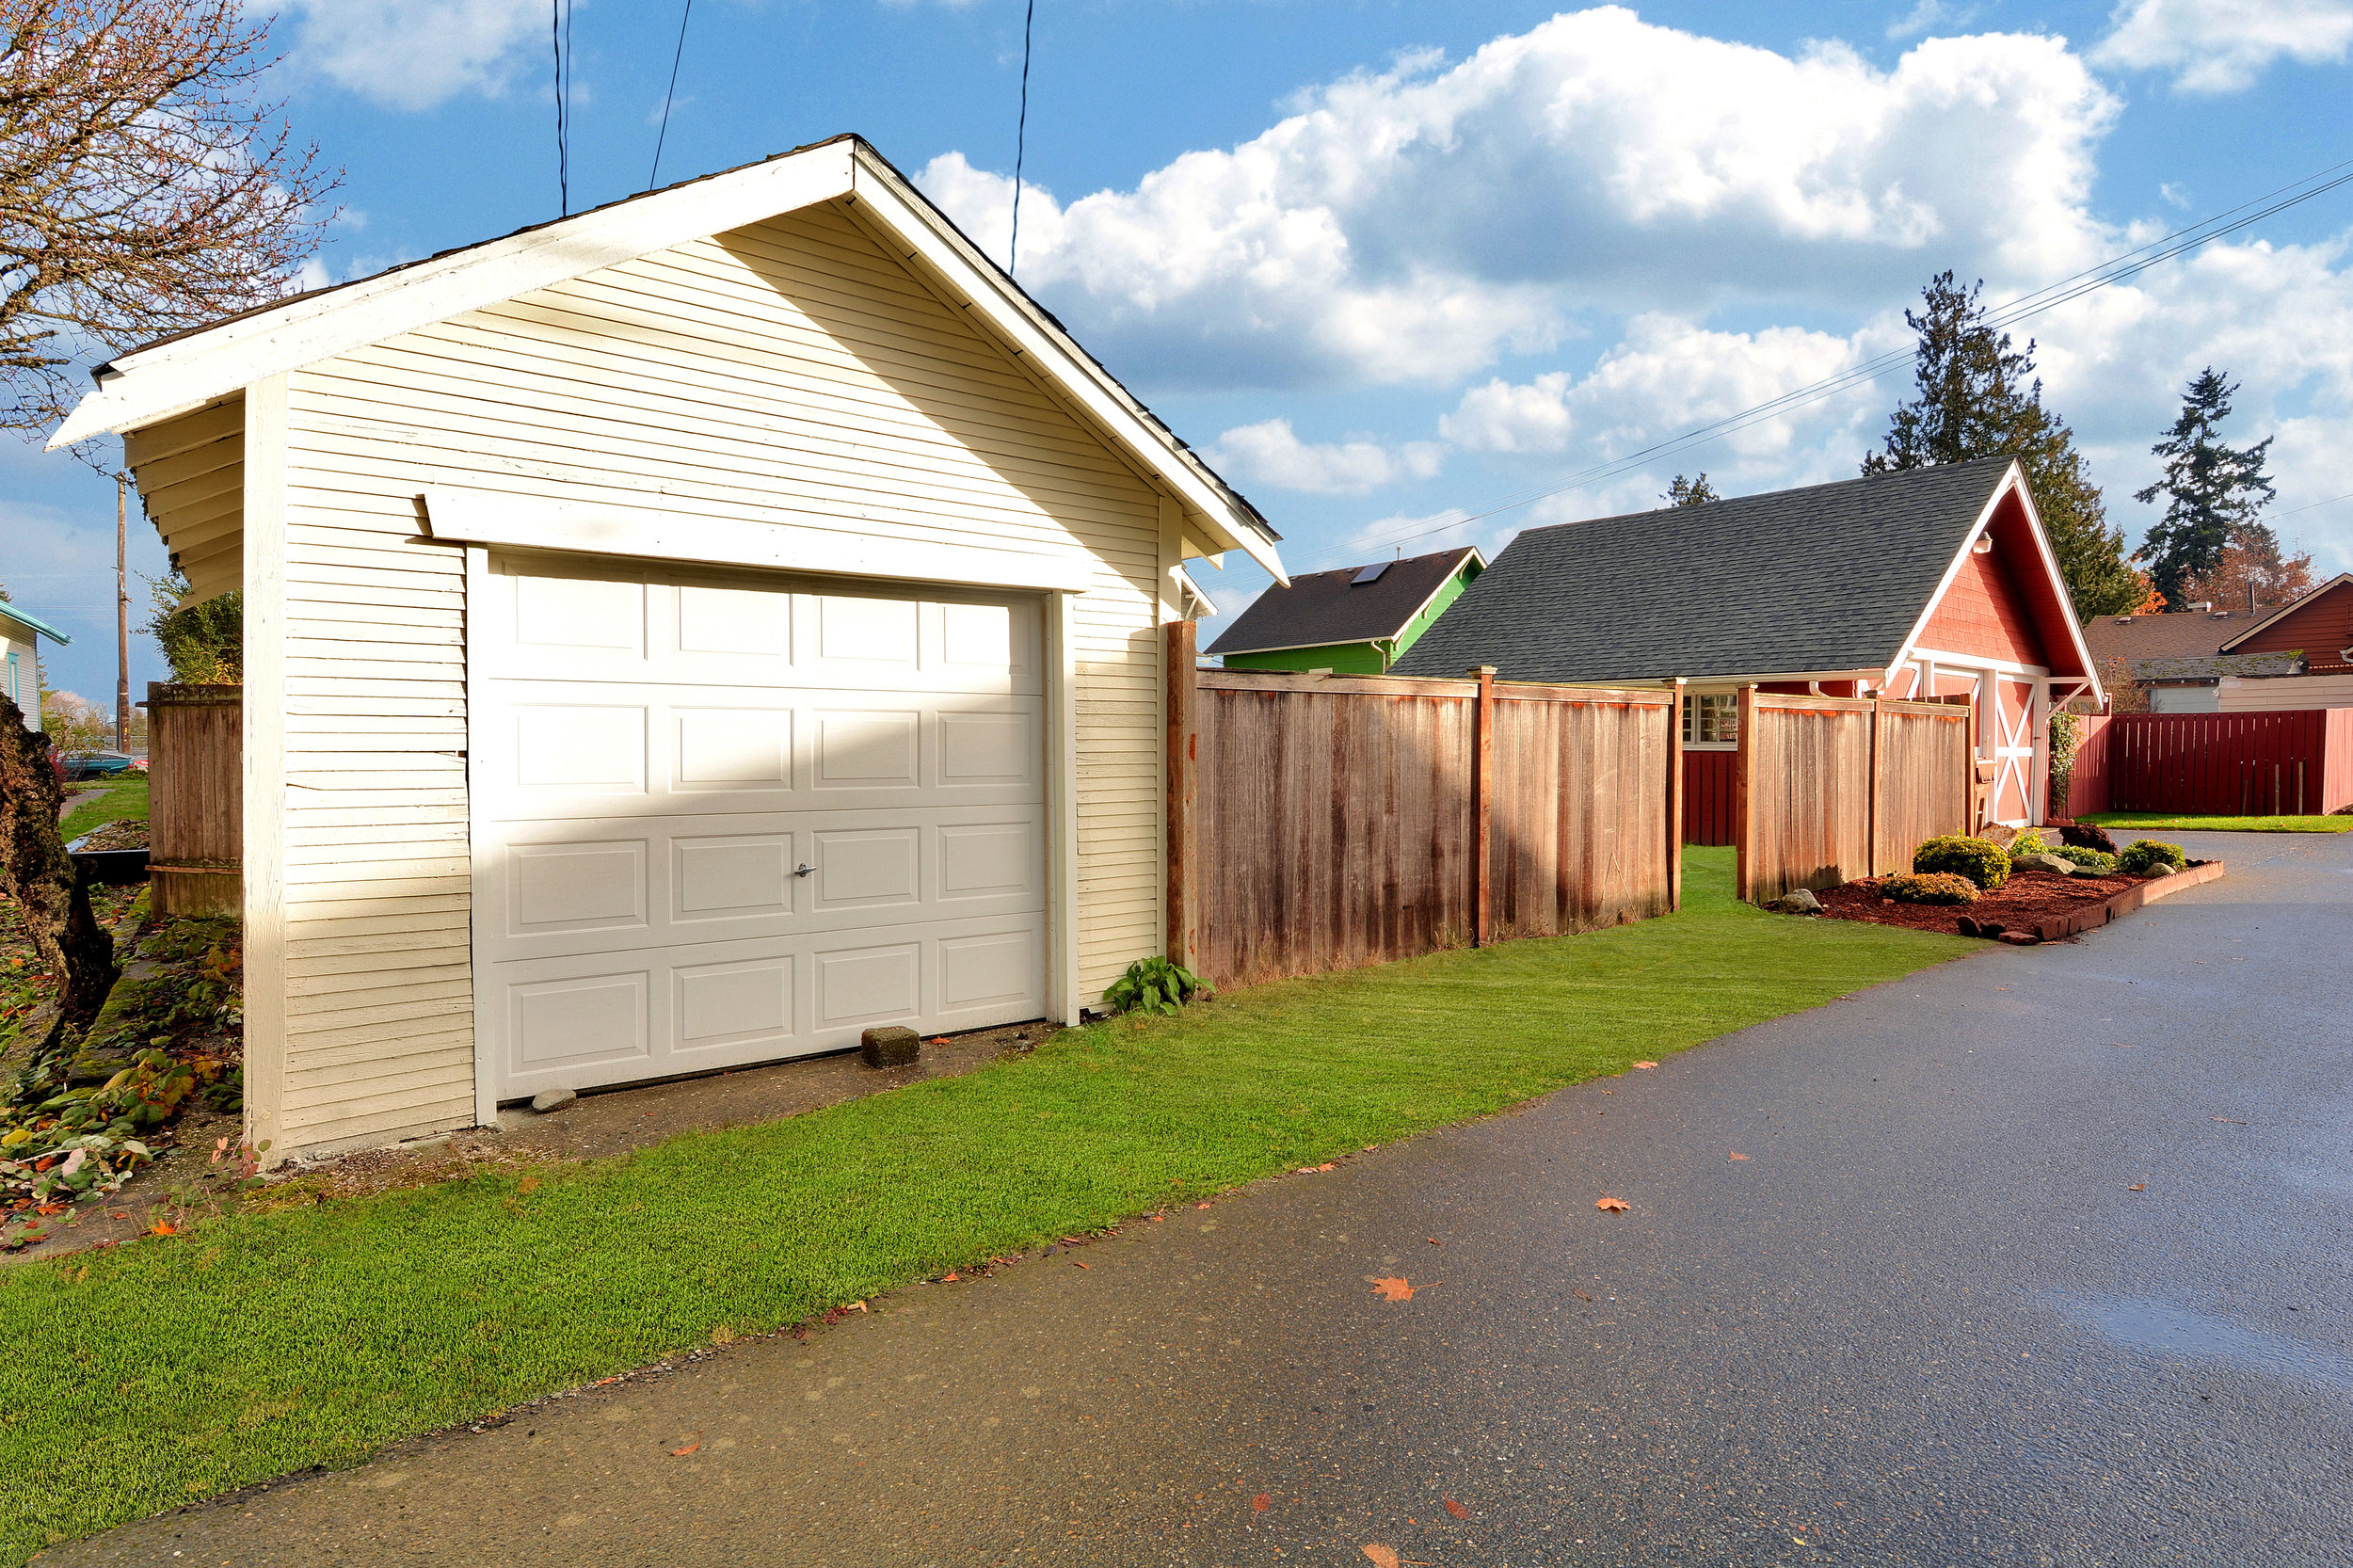 A single car garage borders the alley in the fully-fenced back yard.